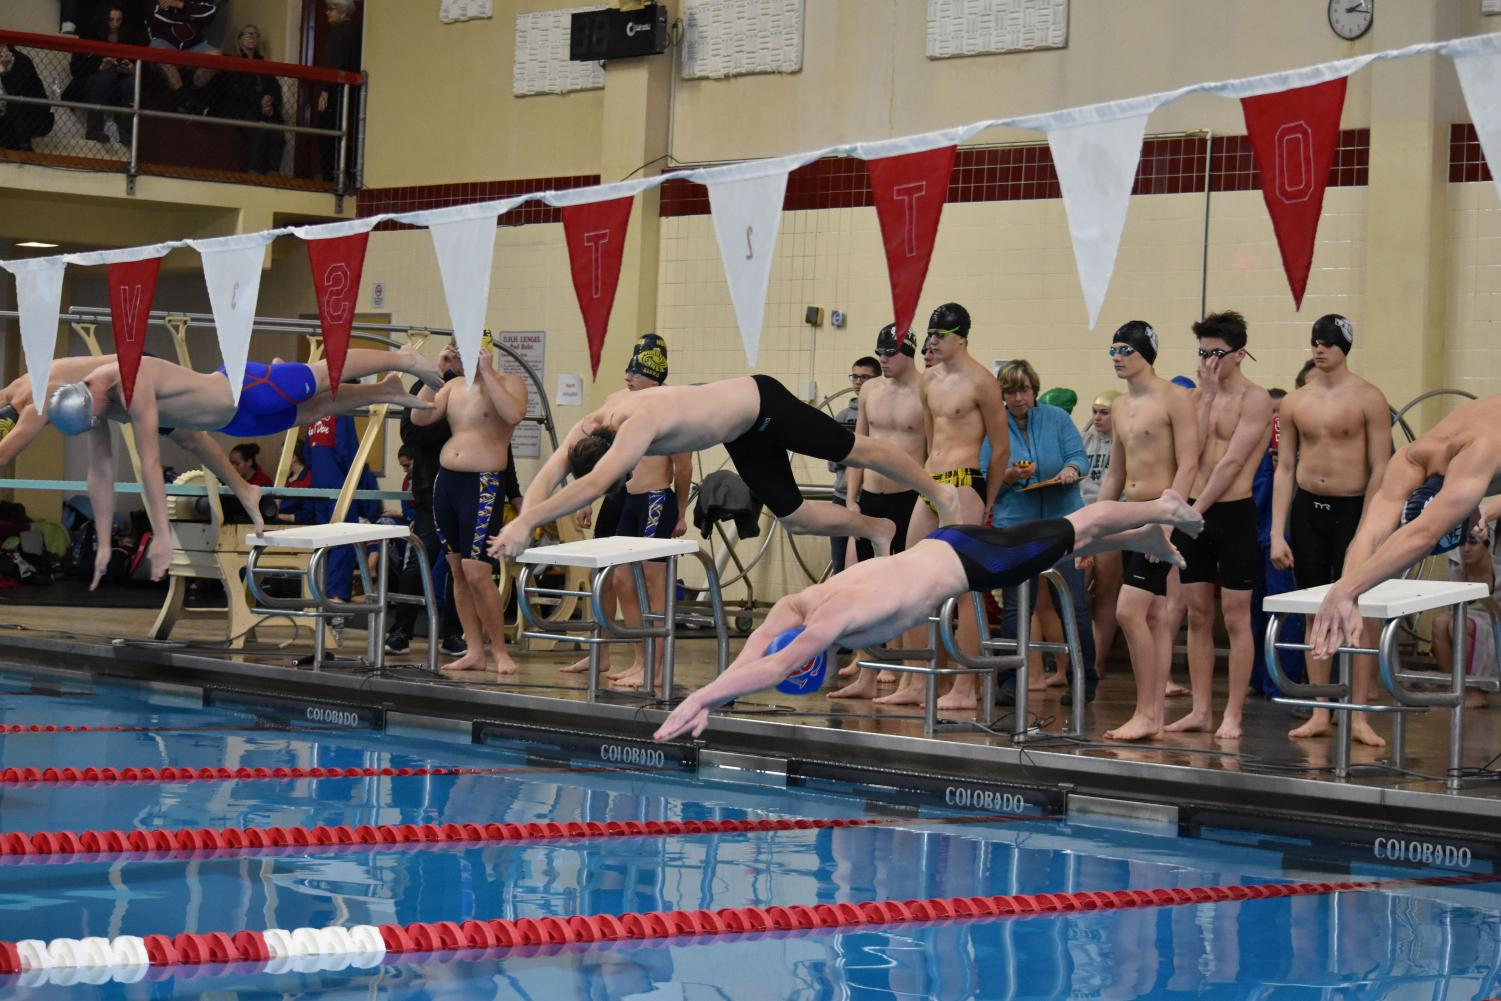 """LAUNCH - At the start of the boys' 400 free relay, senior Josh Zelinsky, middle, dives into the pool. The relay team of Zelinsky, juniors Zach Turnitza and Jordan Young and freshman Zaidian Vanorden set the record with a time of 3:28.8 at the Schuylkill Sprint meet held January 6 at the Ned Hampford Natatorium. """"We are using setting the record to drive us to win districts. We all have been working very hard to get this,"""" Zelinsky said. """"These accomplishments aren't just for us - they're for Coach Ned Hampford as well. He is the real motivation for our success."""""""